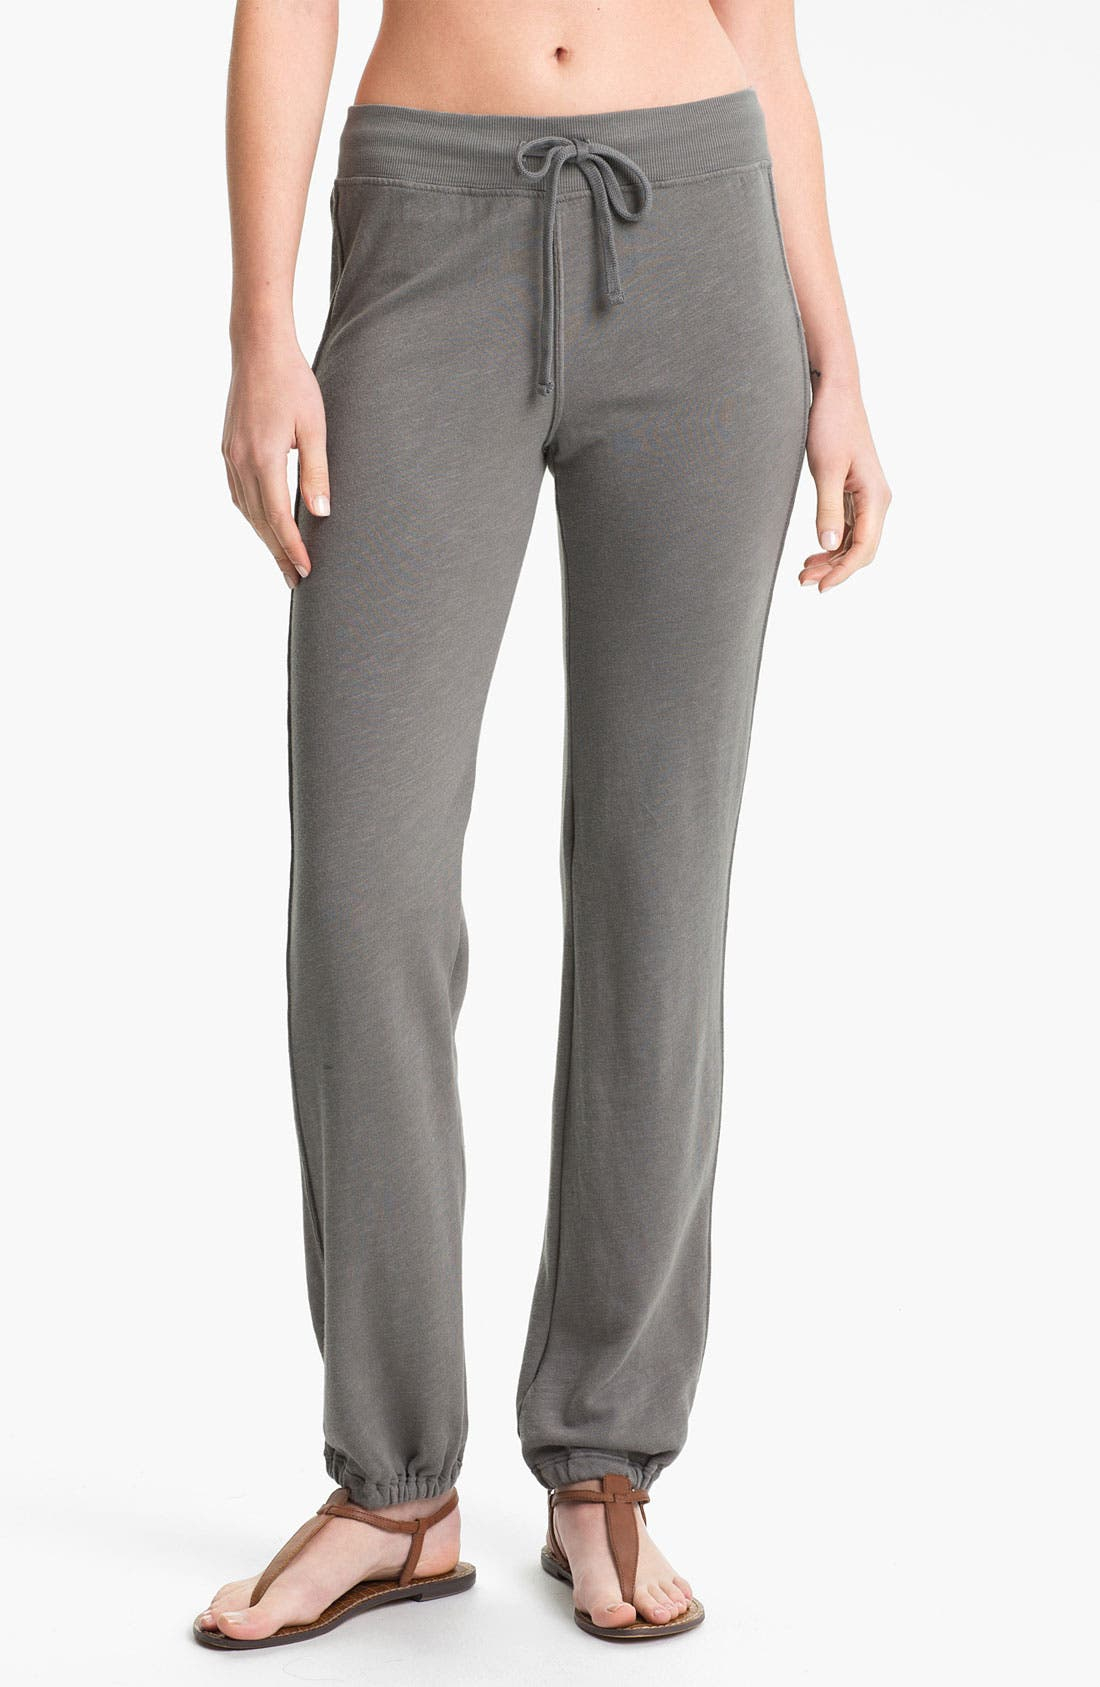 Alternate Image 1 Selected - James Perse 'Genie' Lounge Pants